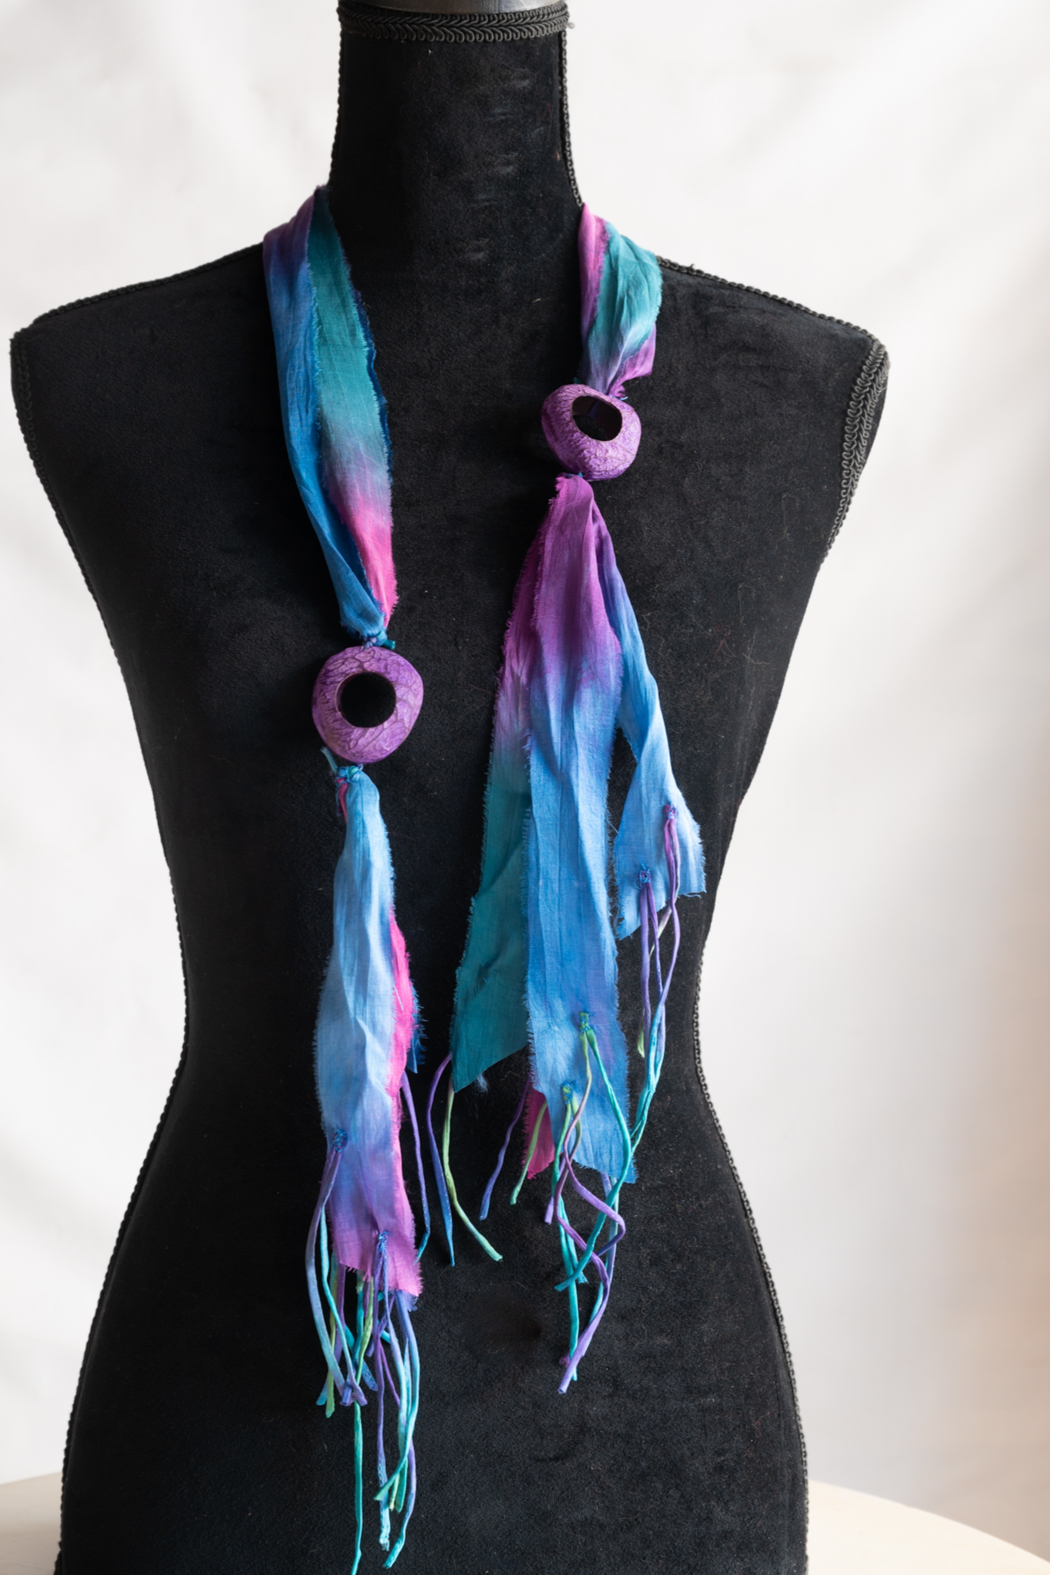 Handmade by CA artist Sari Silk Blueberries & Grapes Scarf-Necklace - Main Image